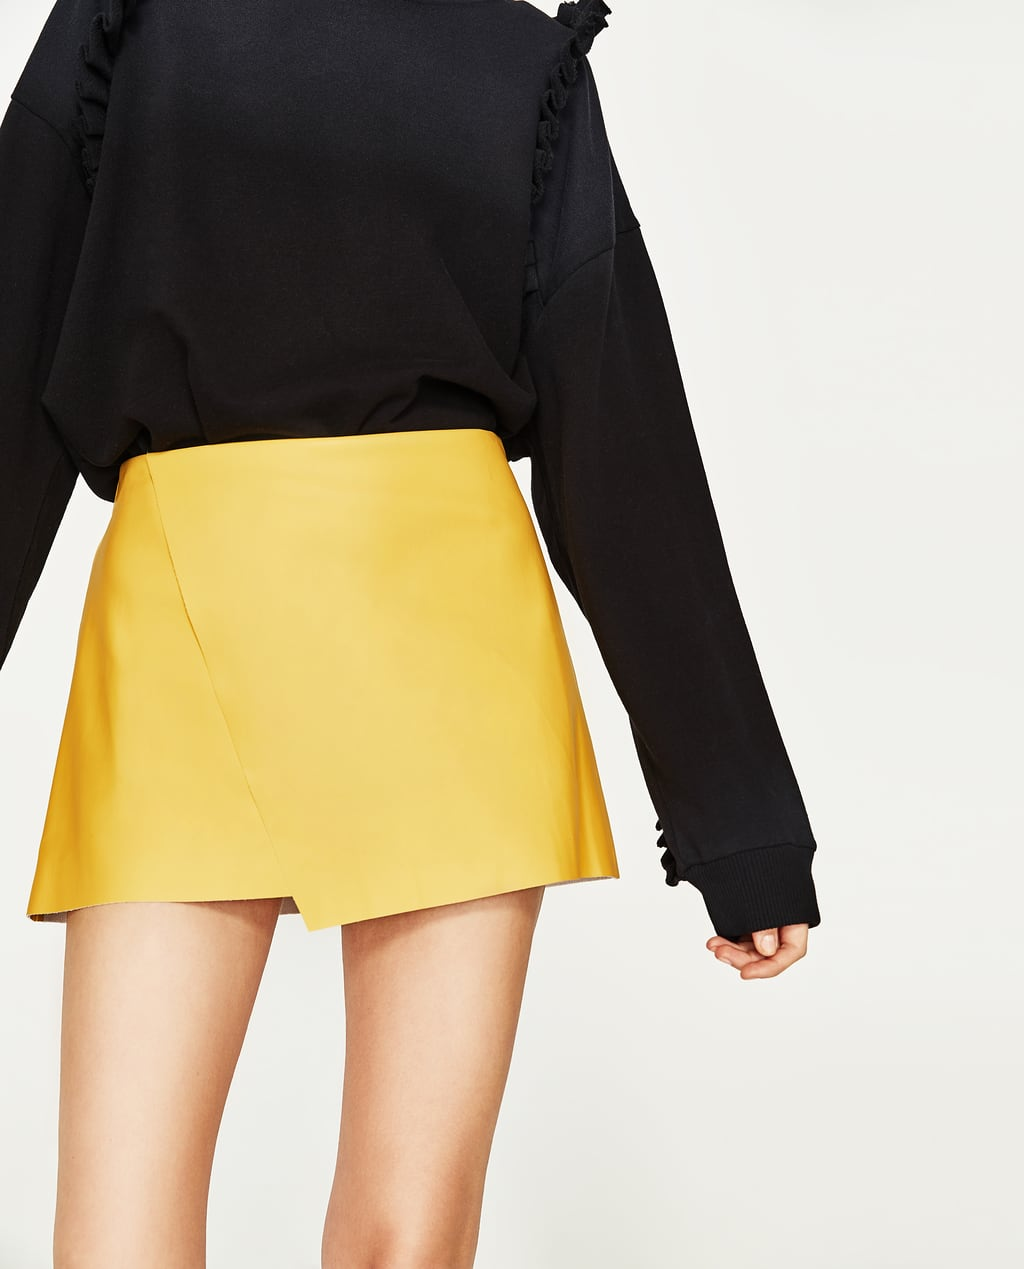 LEATHER EFFECT MINI SKIRT - COLLECTION-SALE-WOMAN | ZARA United States